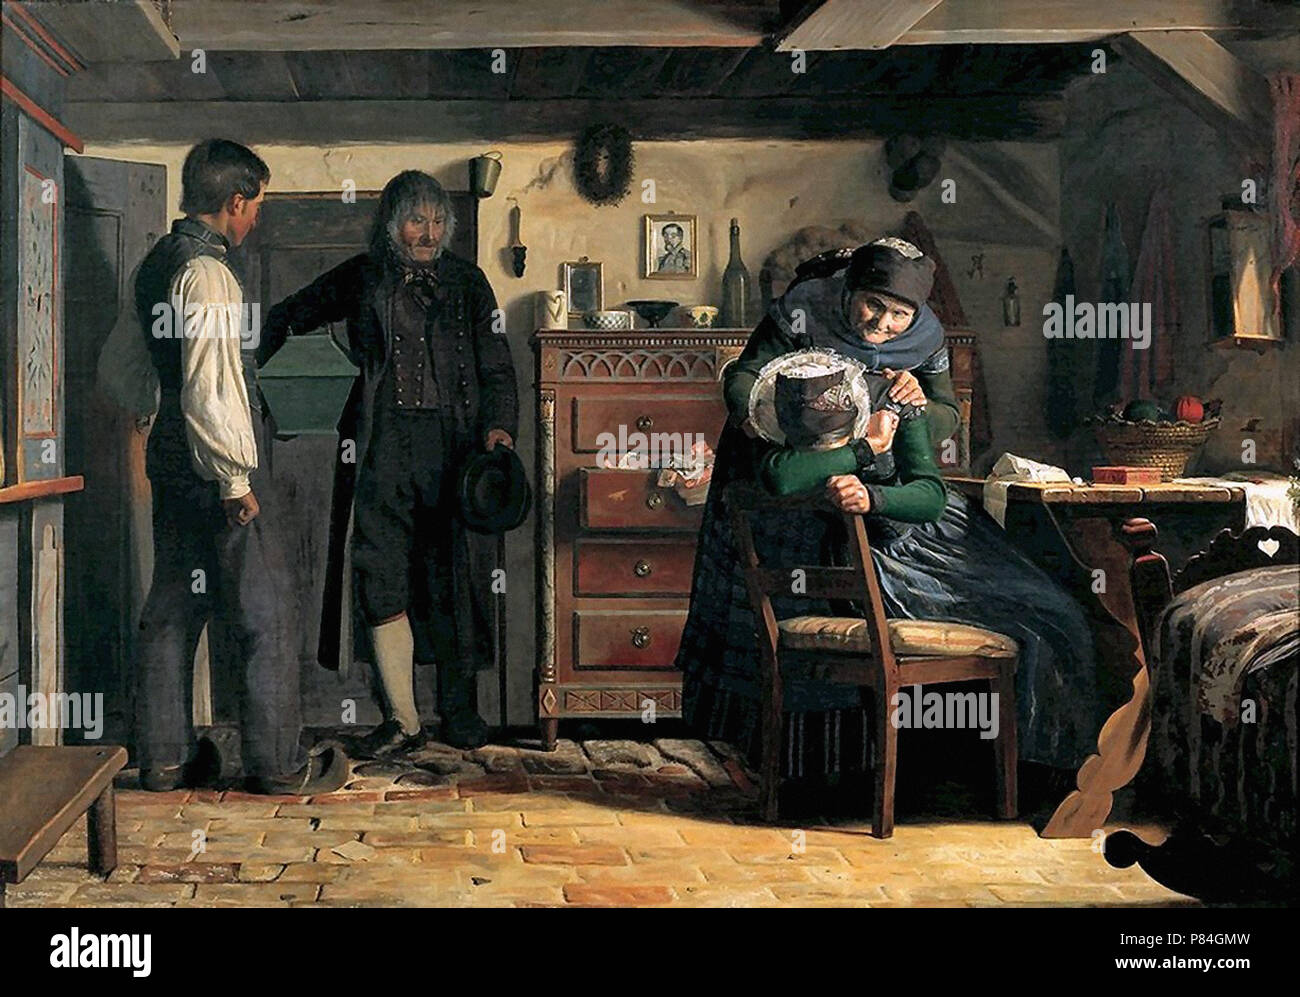 Dalsgaard  Christen - Distraught Woman Being Consoled - Stock Image